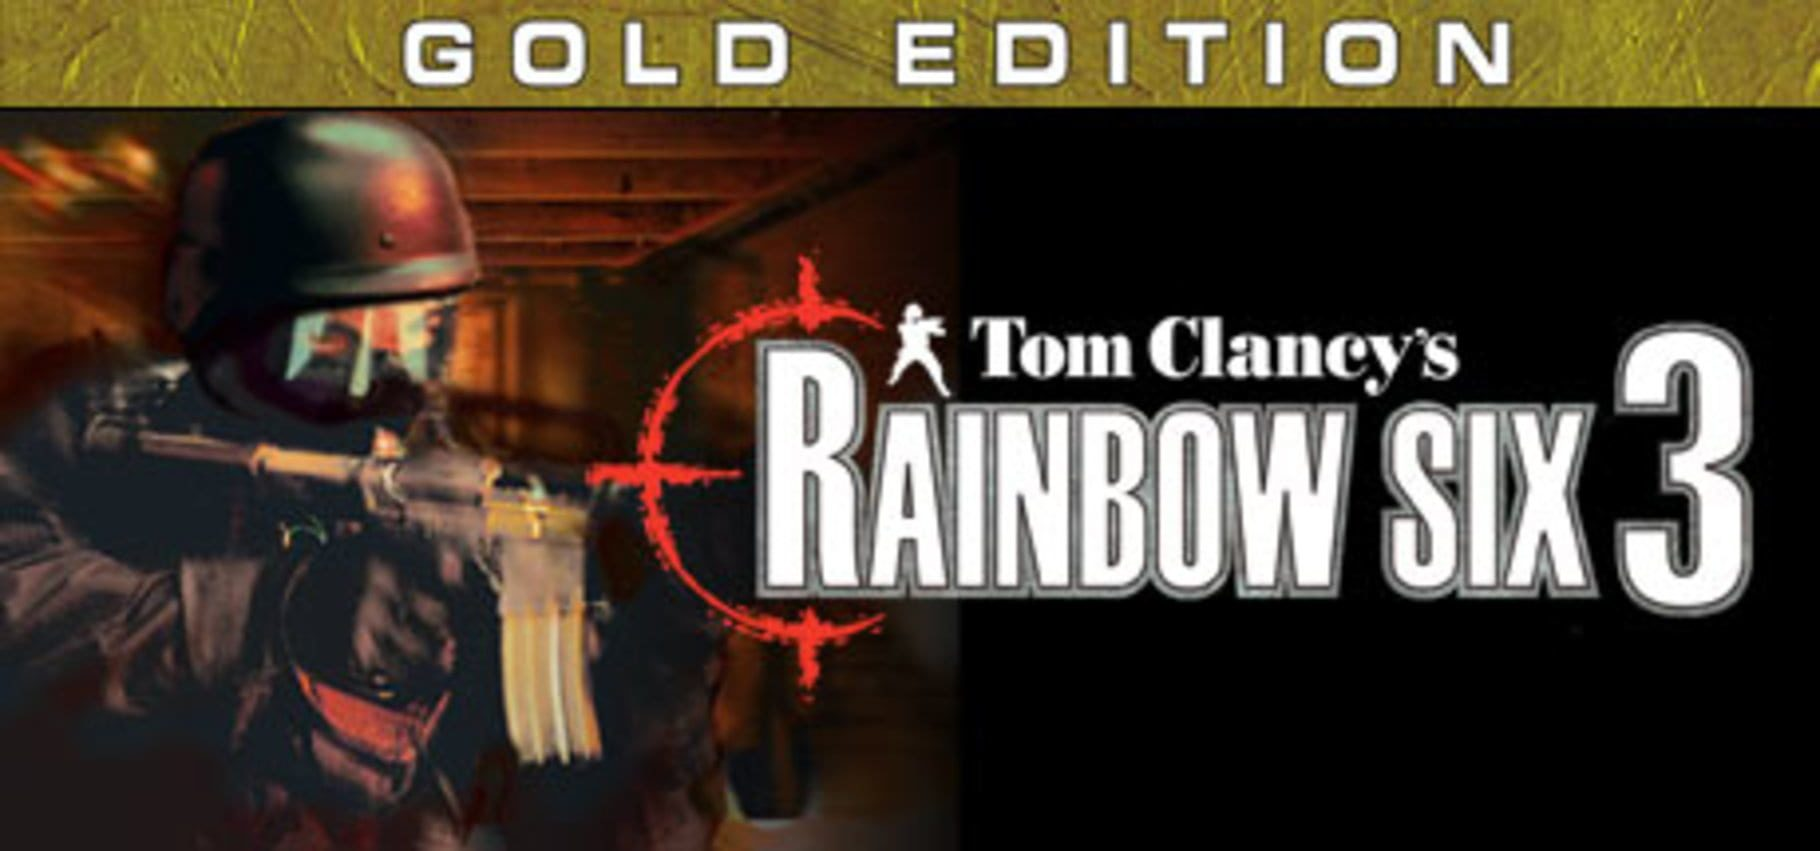 buy duplicate Tom Clancy's Rainbow Six 3 Gold cd key for all platform